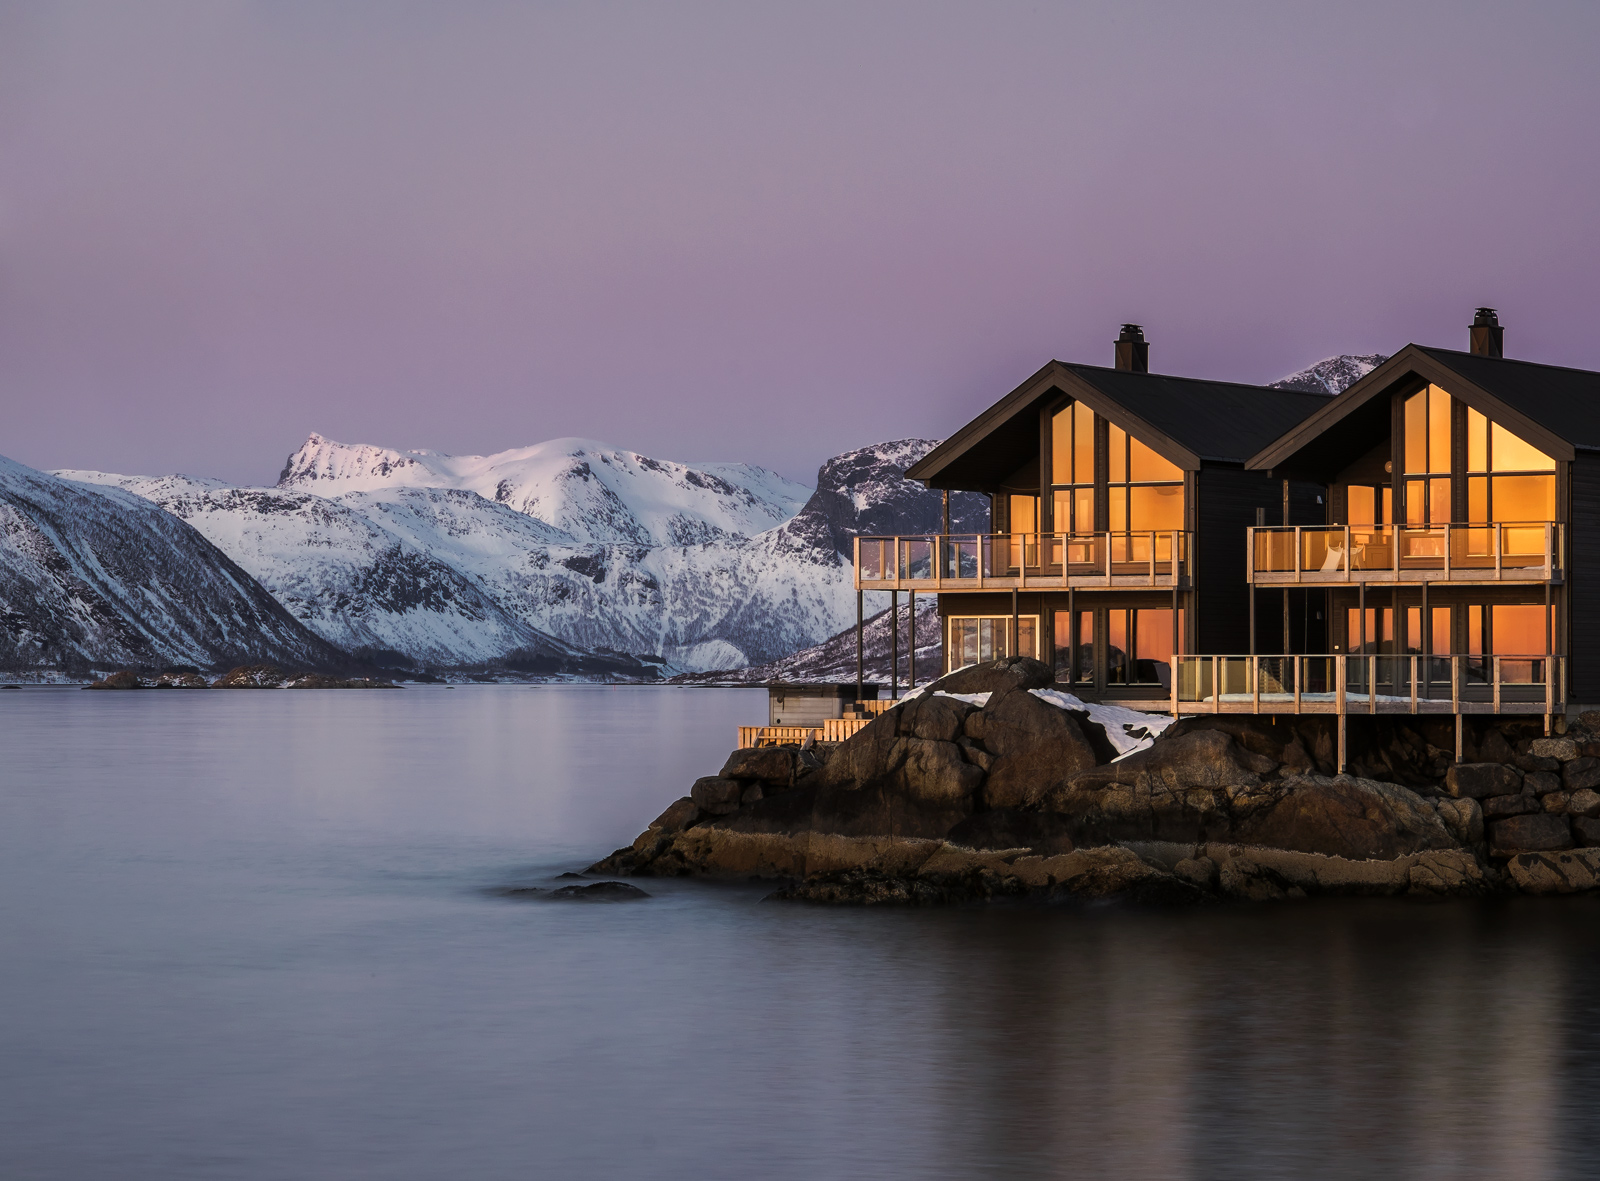 The afterglow that oozes with rich colour a few minutes after sunset in Arctic climes has to be seen to be believed.  This one...